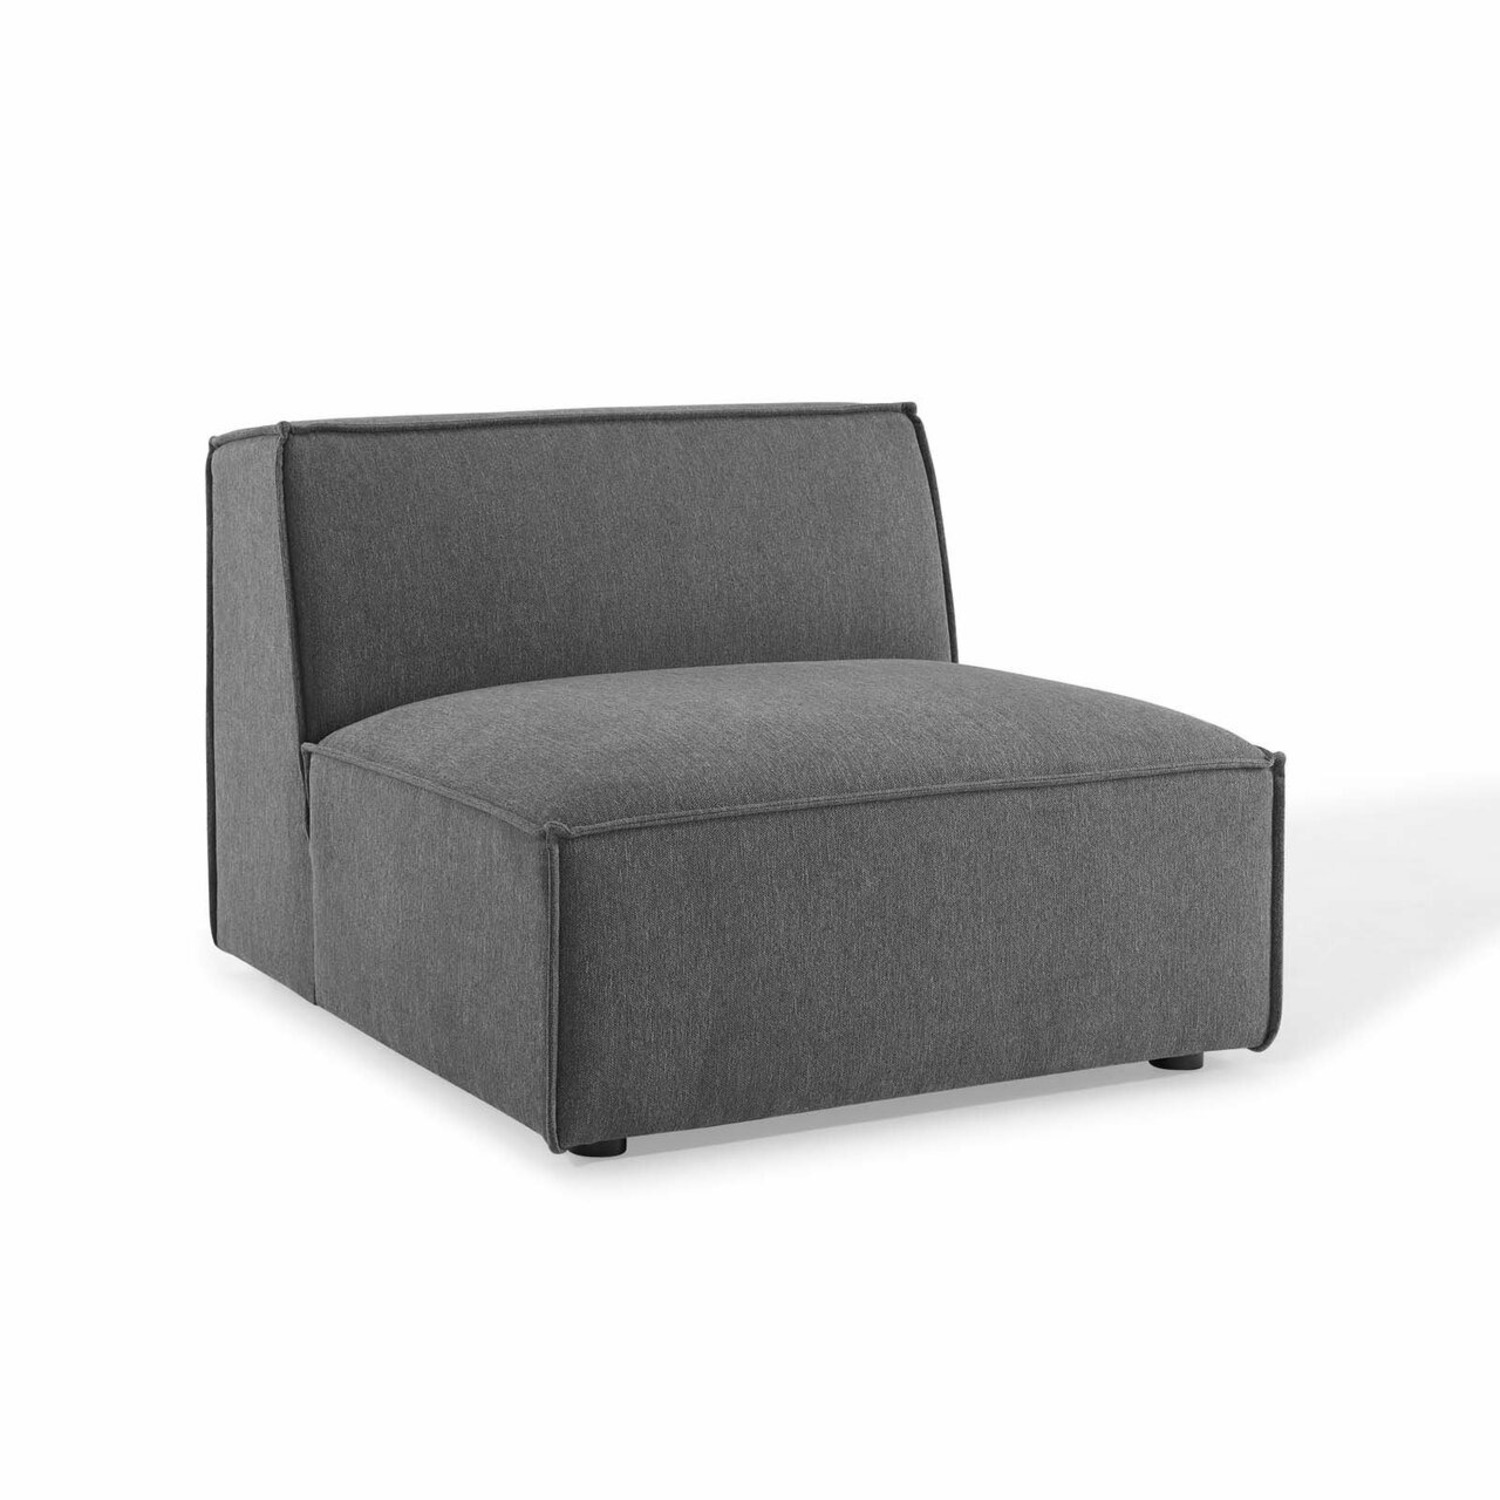 6-Piece Sectional Sofa In Charcoal Upholstery - image-6